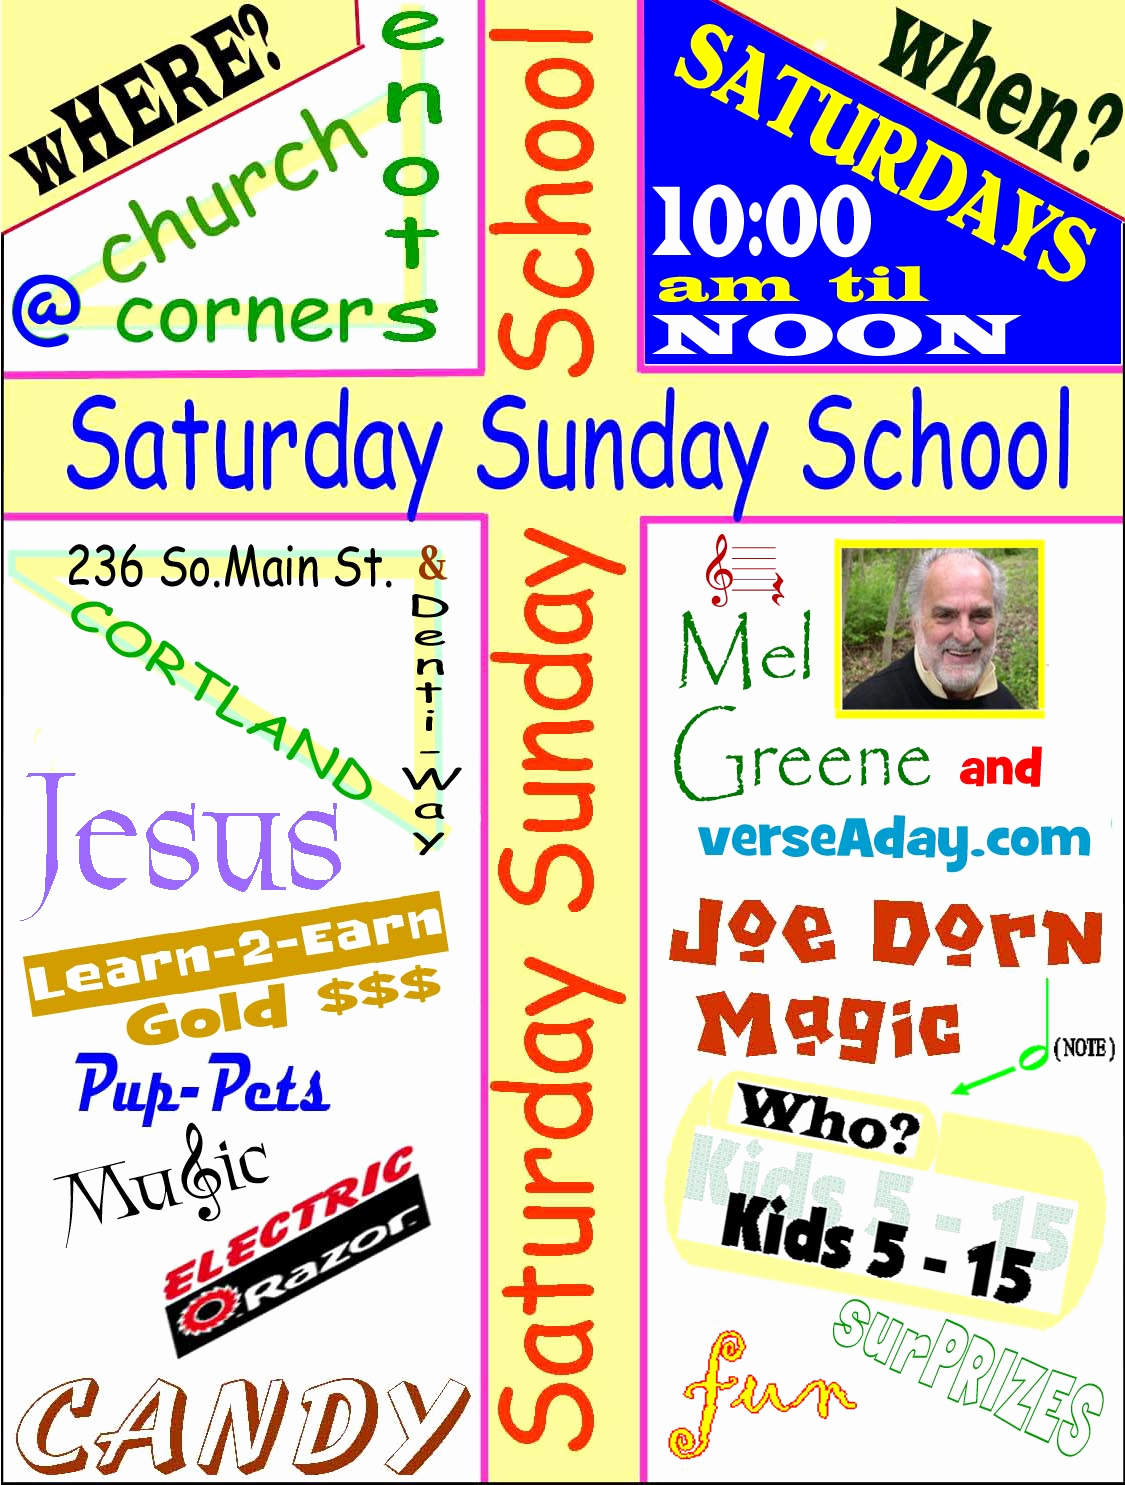 Sunday School Invitation Flyer Luxury Sunday School Invitation Flyer Examples